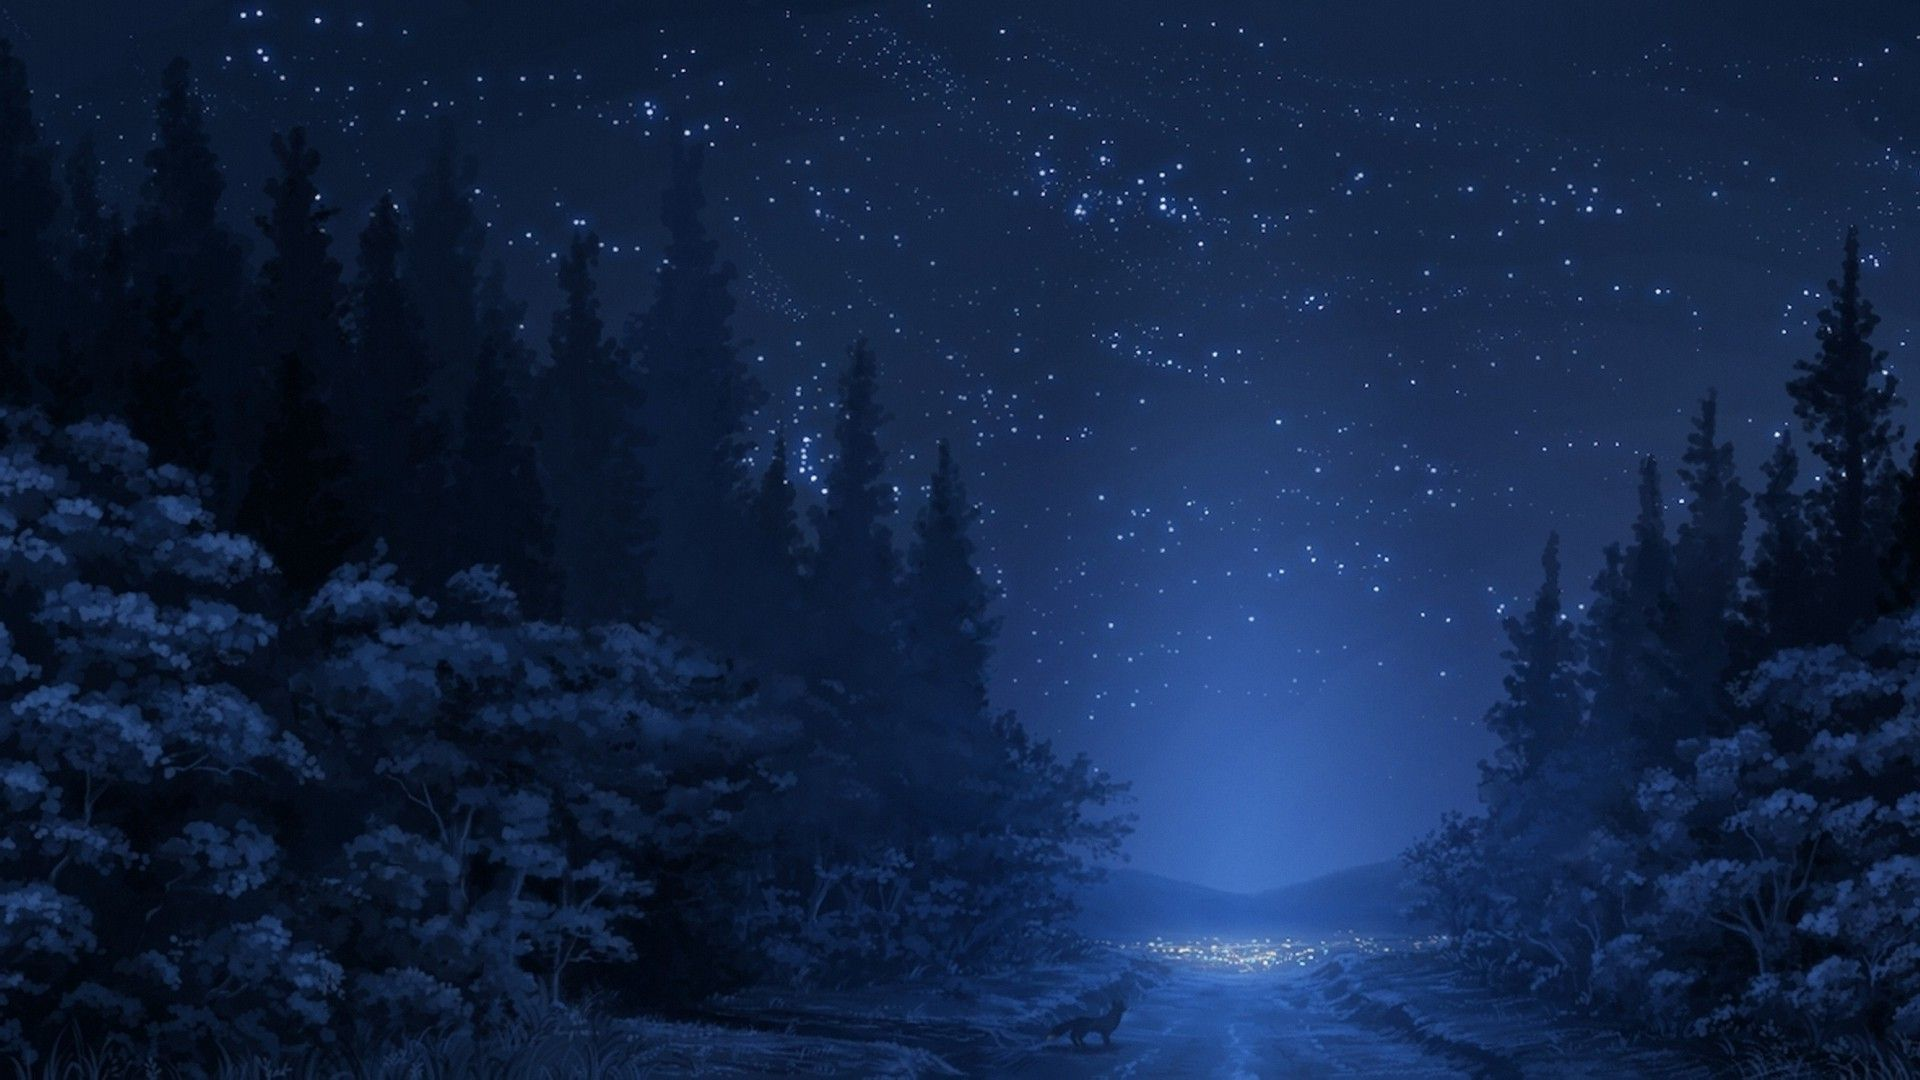 1920x1080 road, Stars, Night, Fox, Forest, Trees, Anime